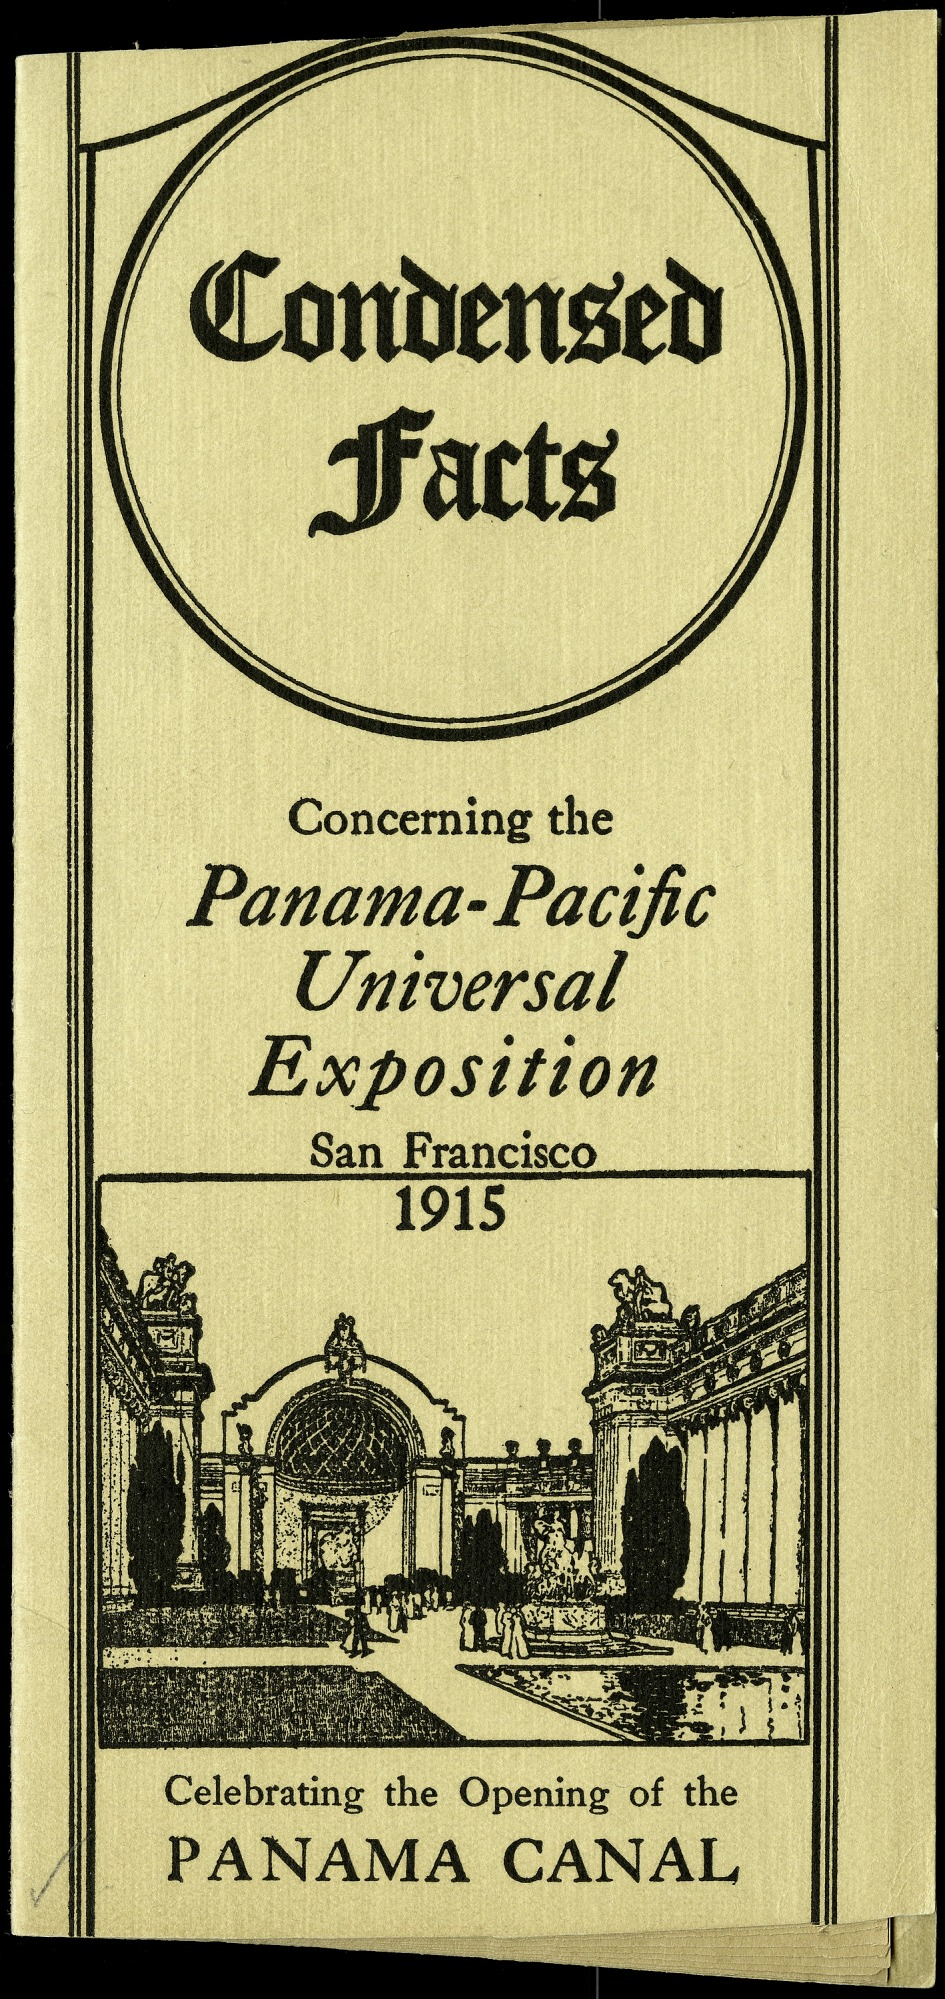 Brochure for the Panama-Pacific International Exposition